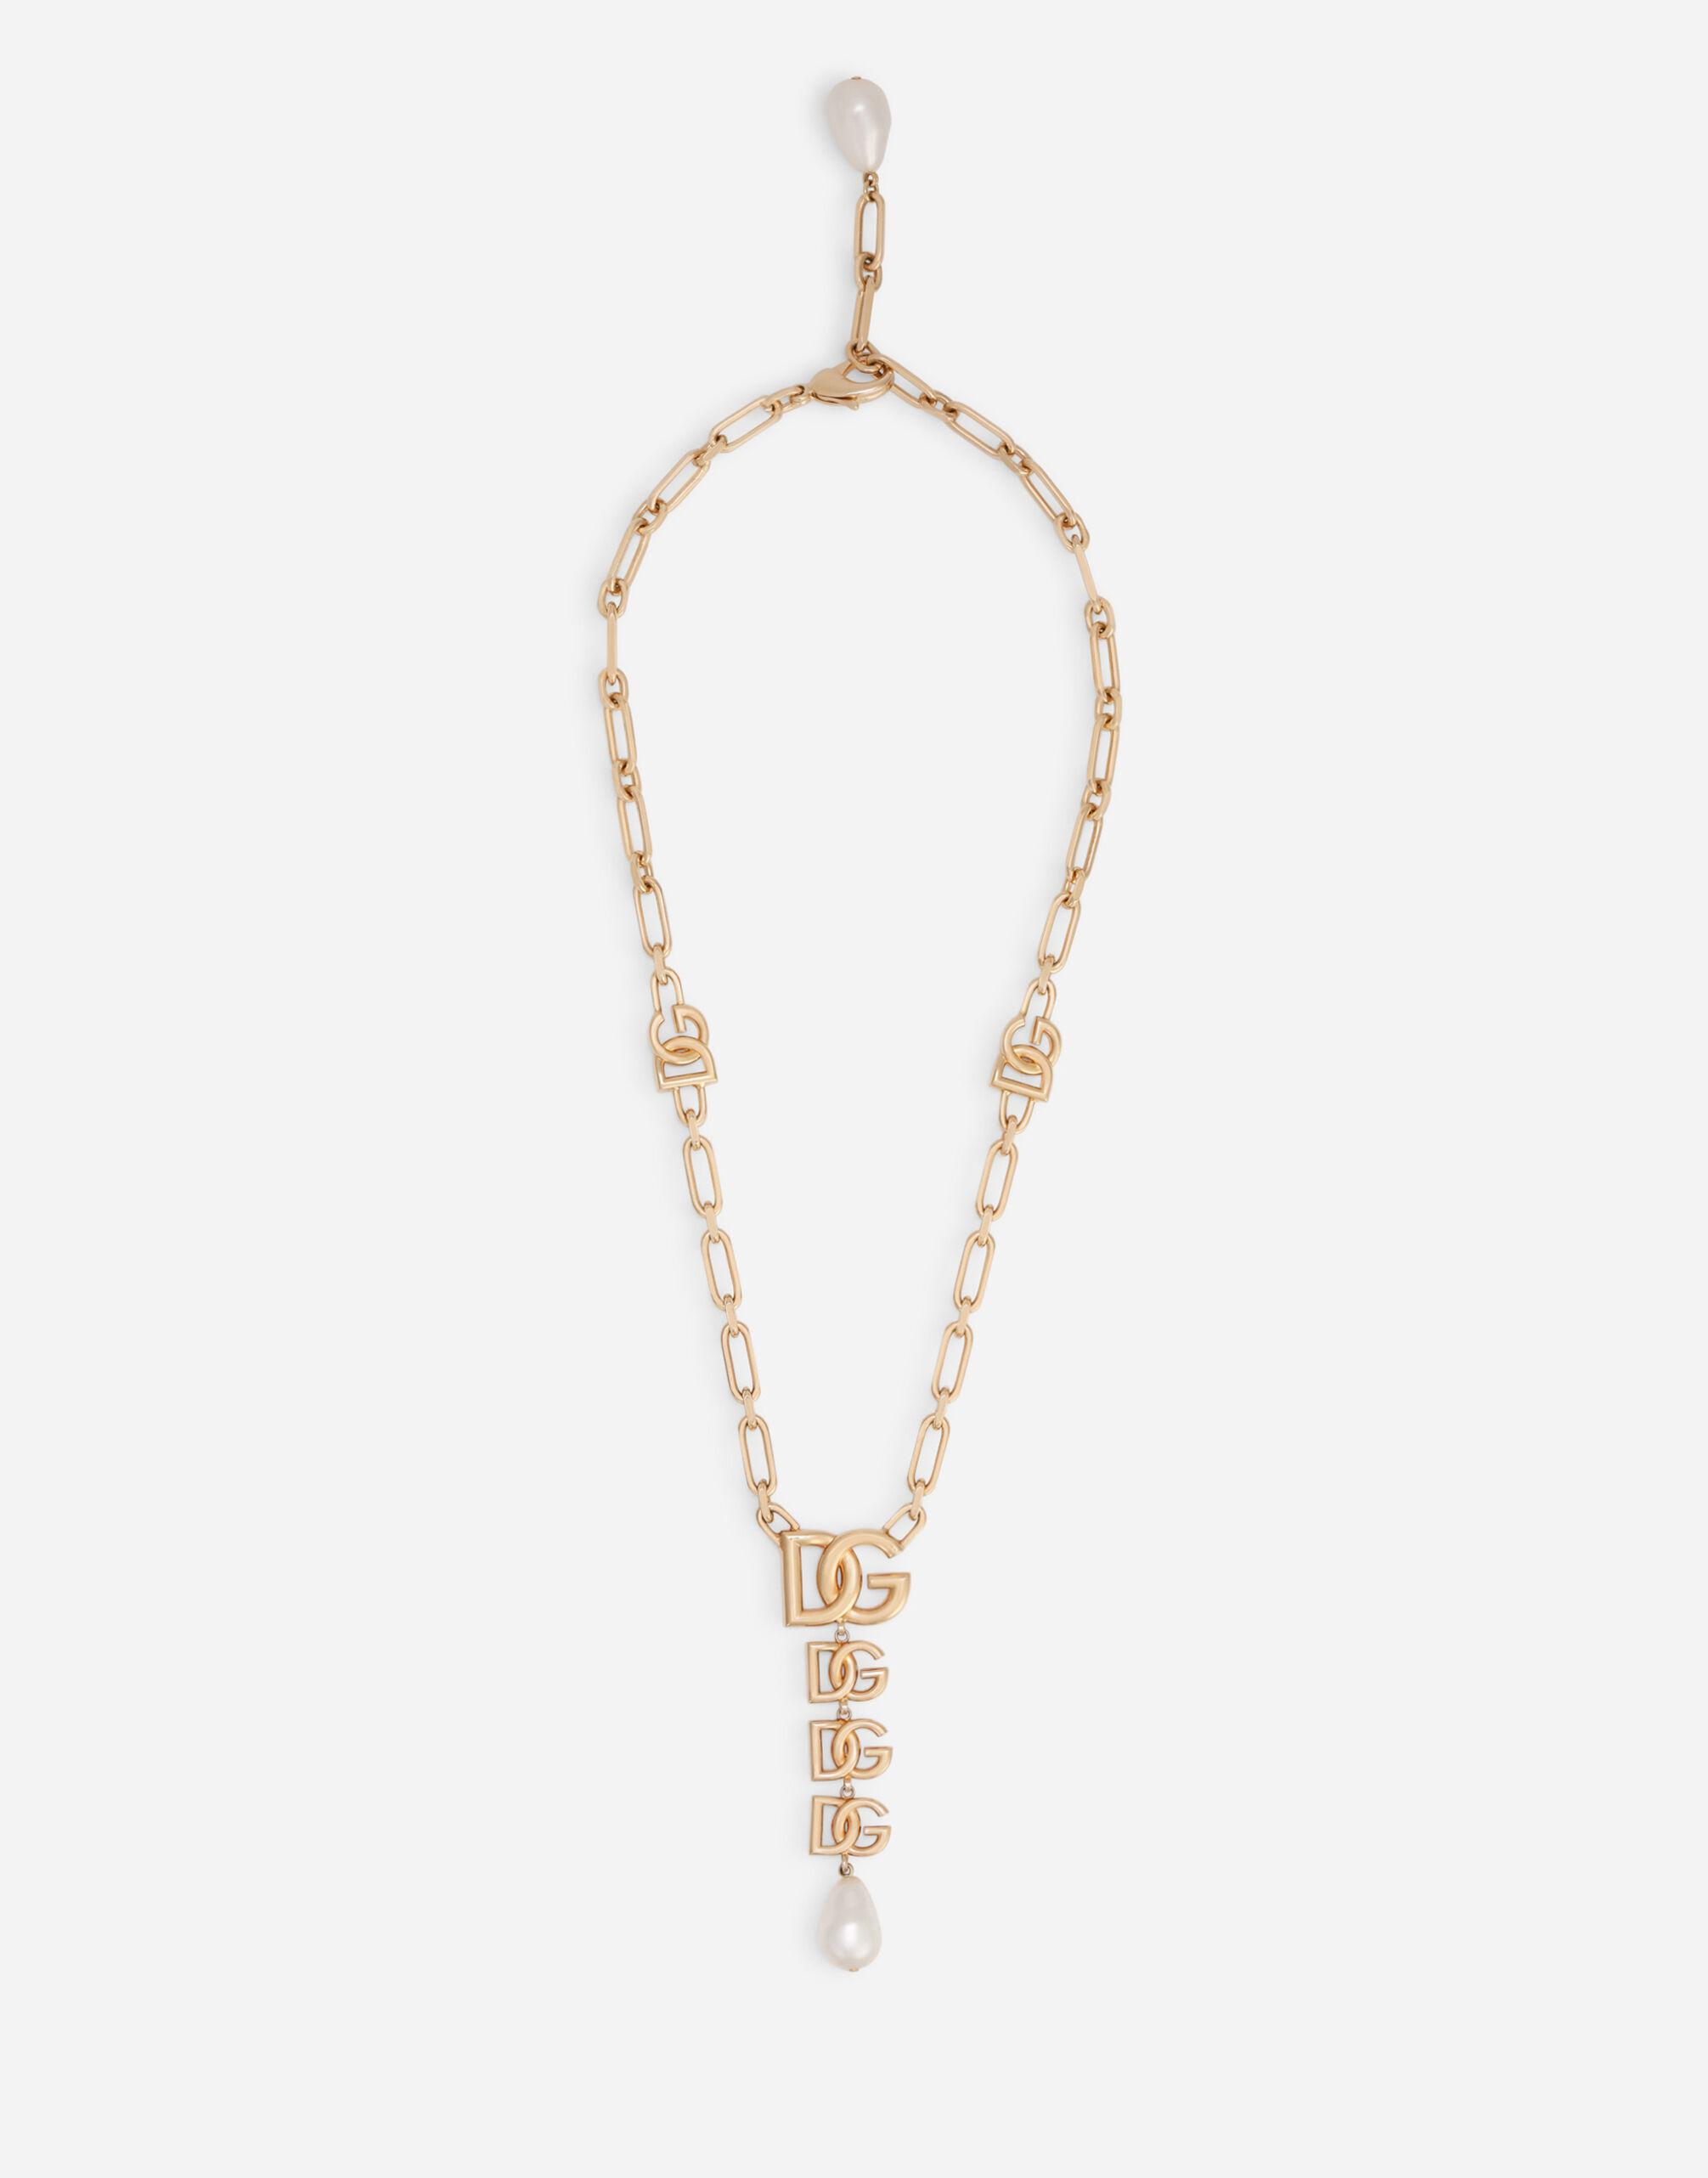 Necklace with DG logo pendant and pearl embellishment